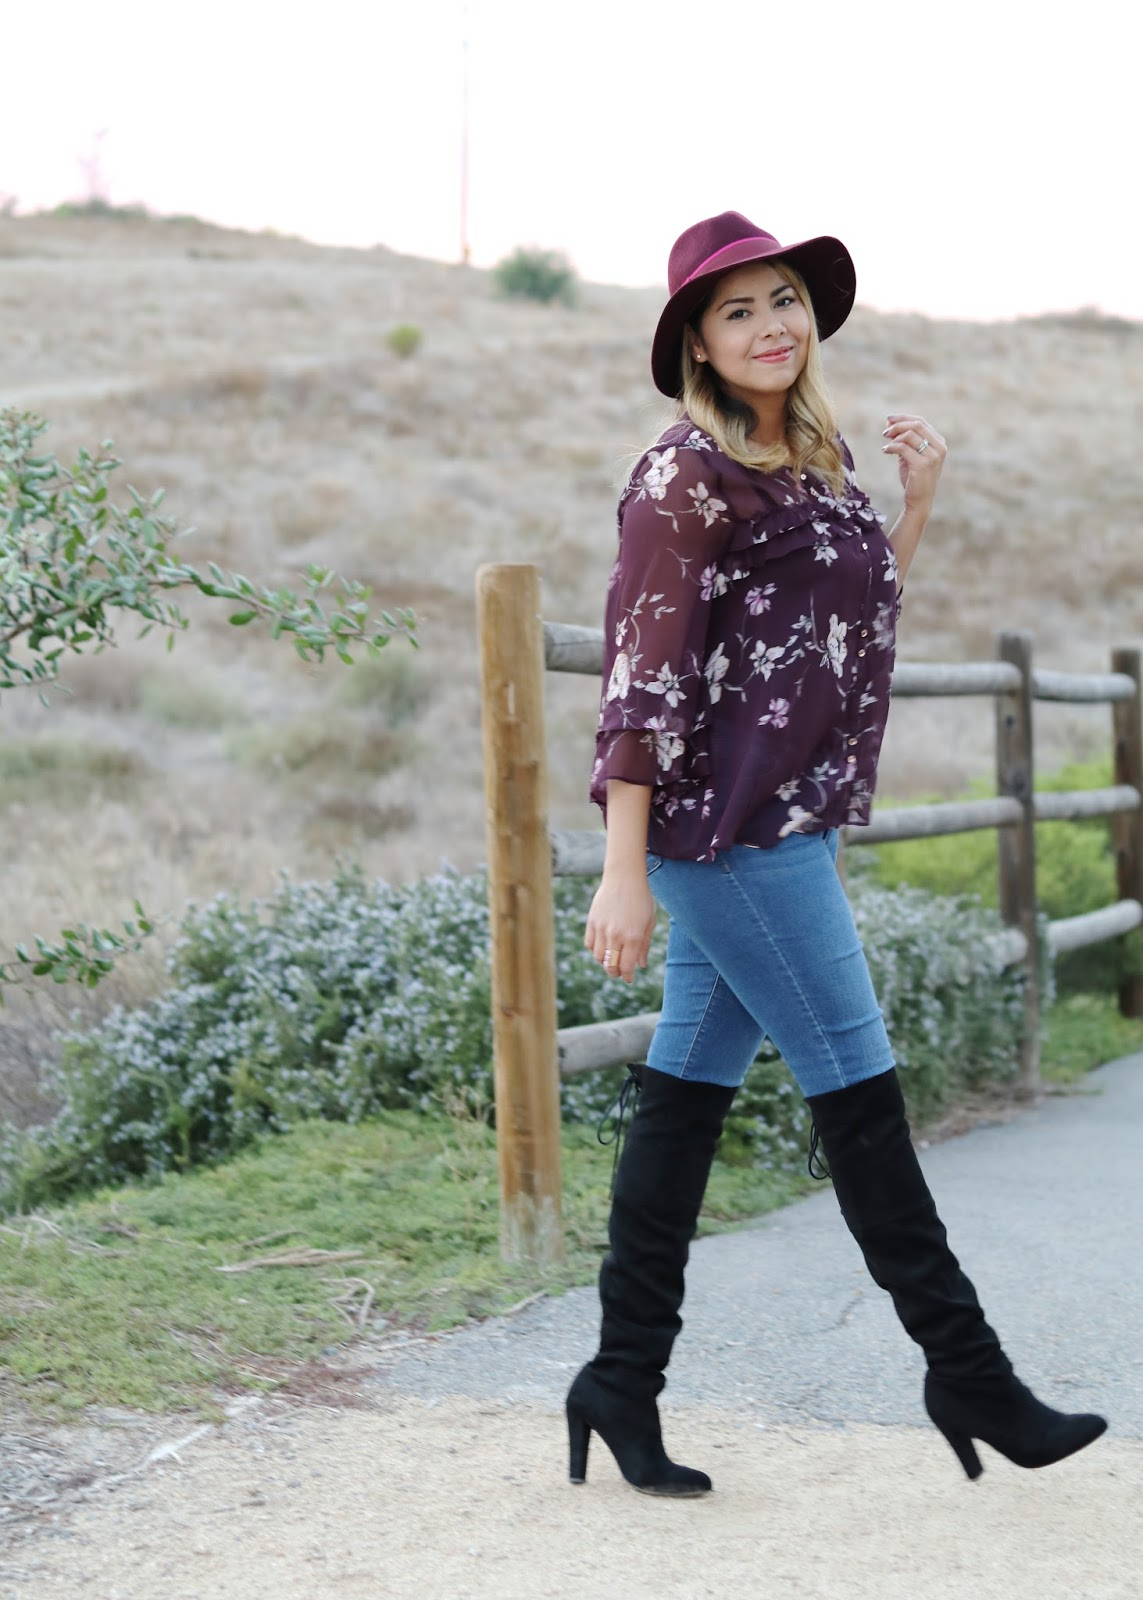 Old navy skinny jeans, a fall 2016 outfit, fall fashion outfit ideas, san diego style blogger